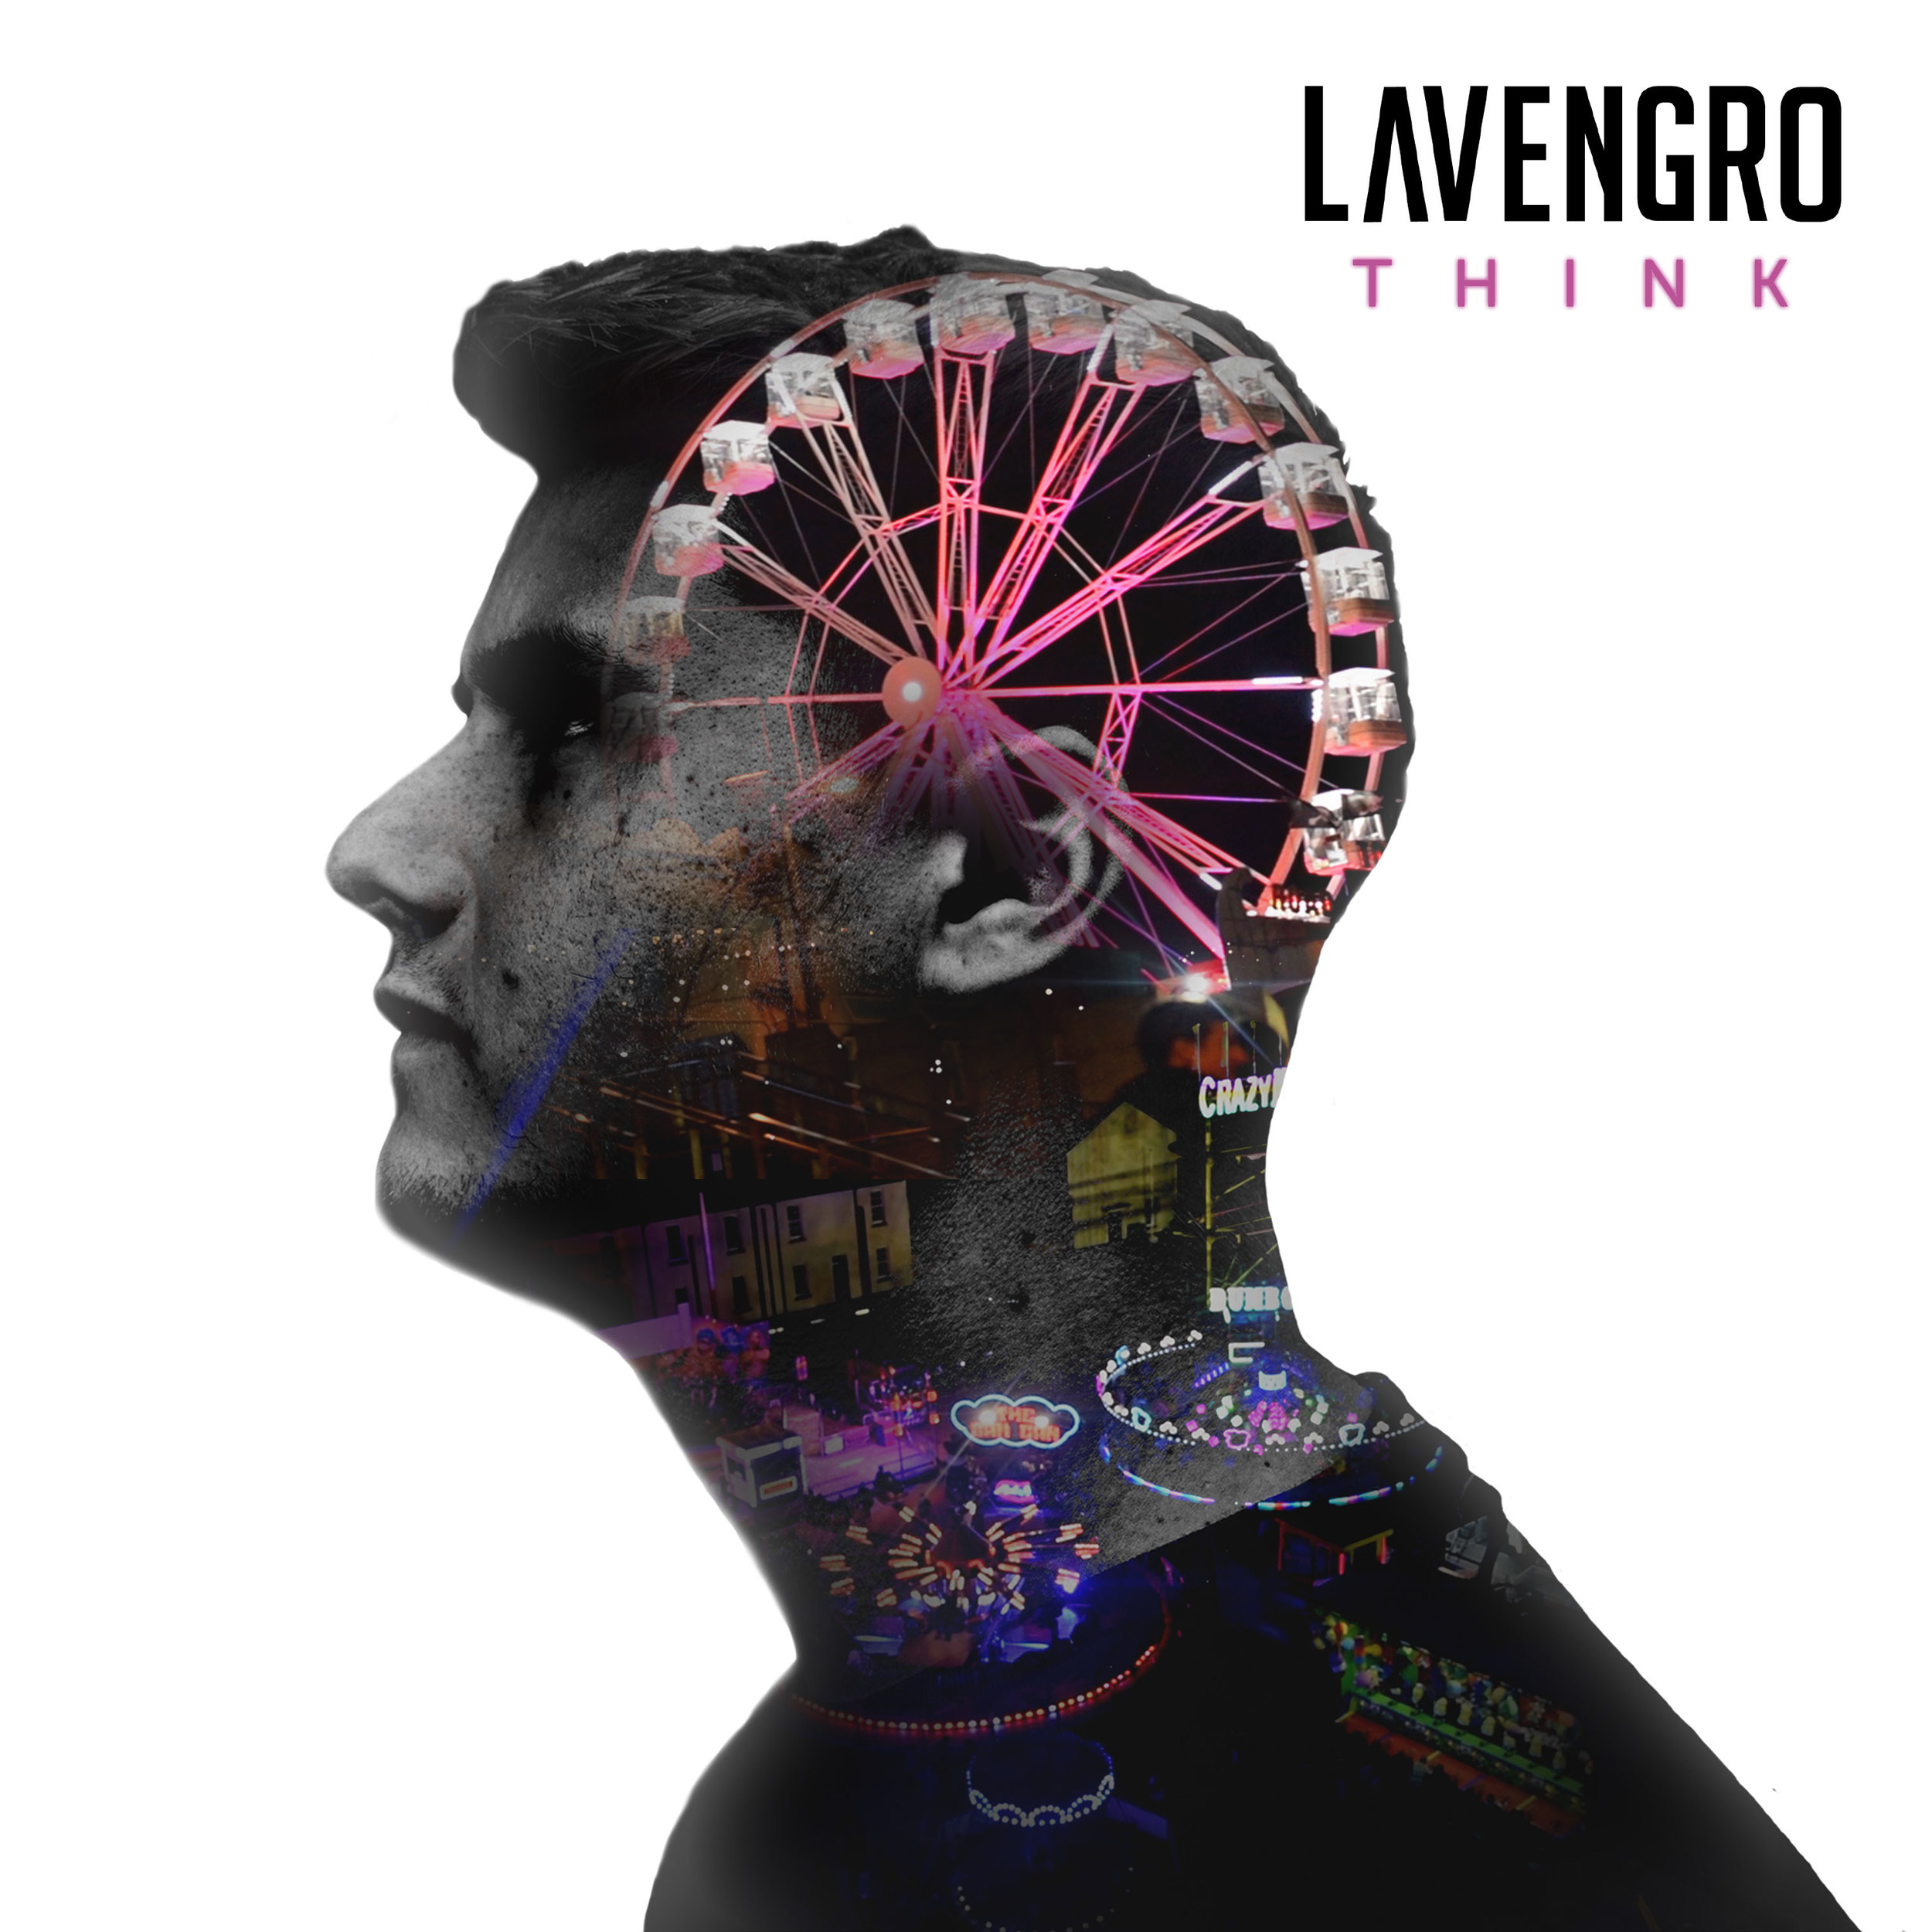 LAVENGRO-THINK-SINGLE-ARTWORK.jpg